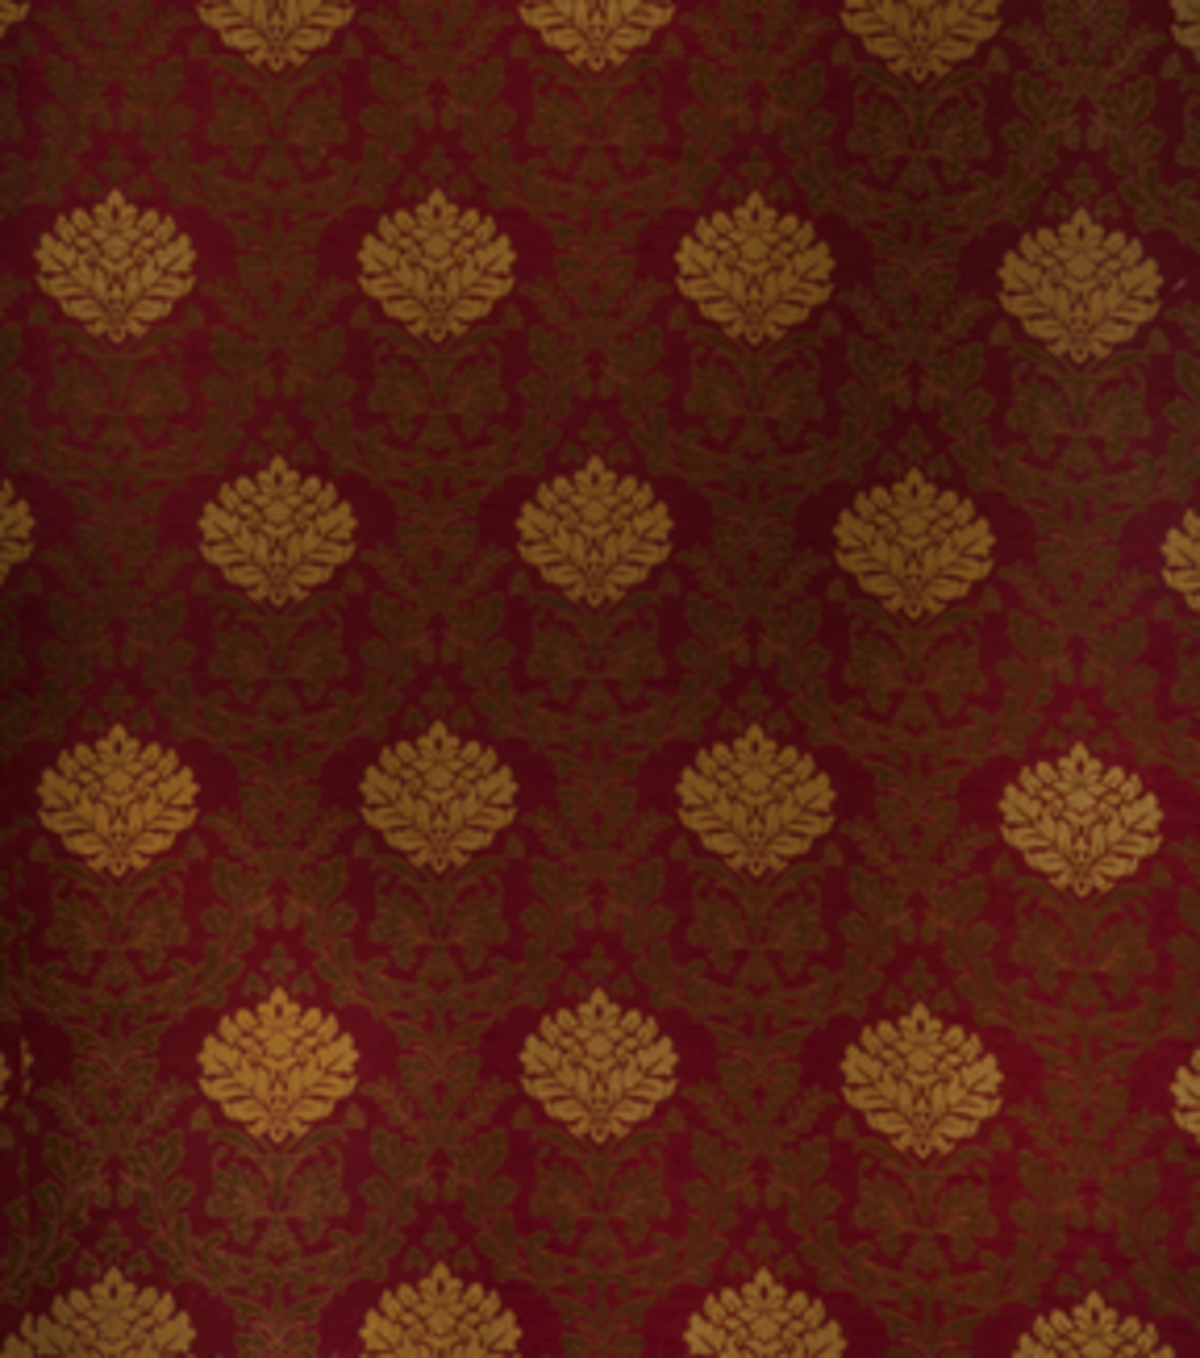 Home Decor 8\u0022x8\u0022 Fabric Swatch-Print Fabric Eaton Square Marshall Claret